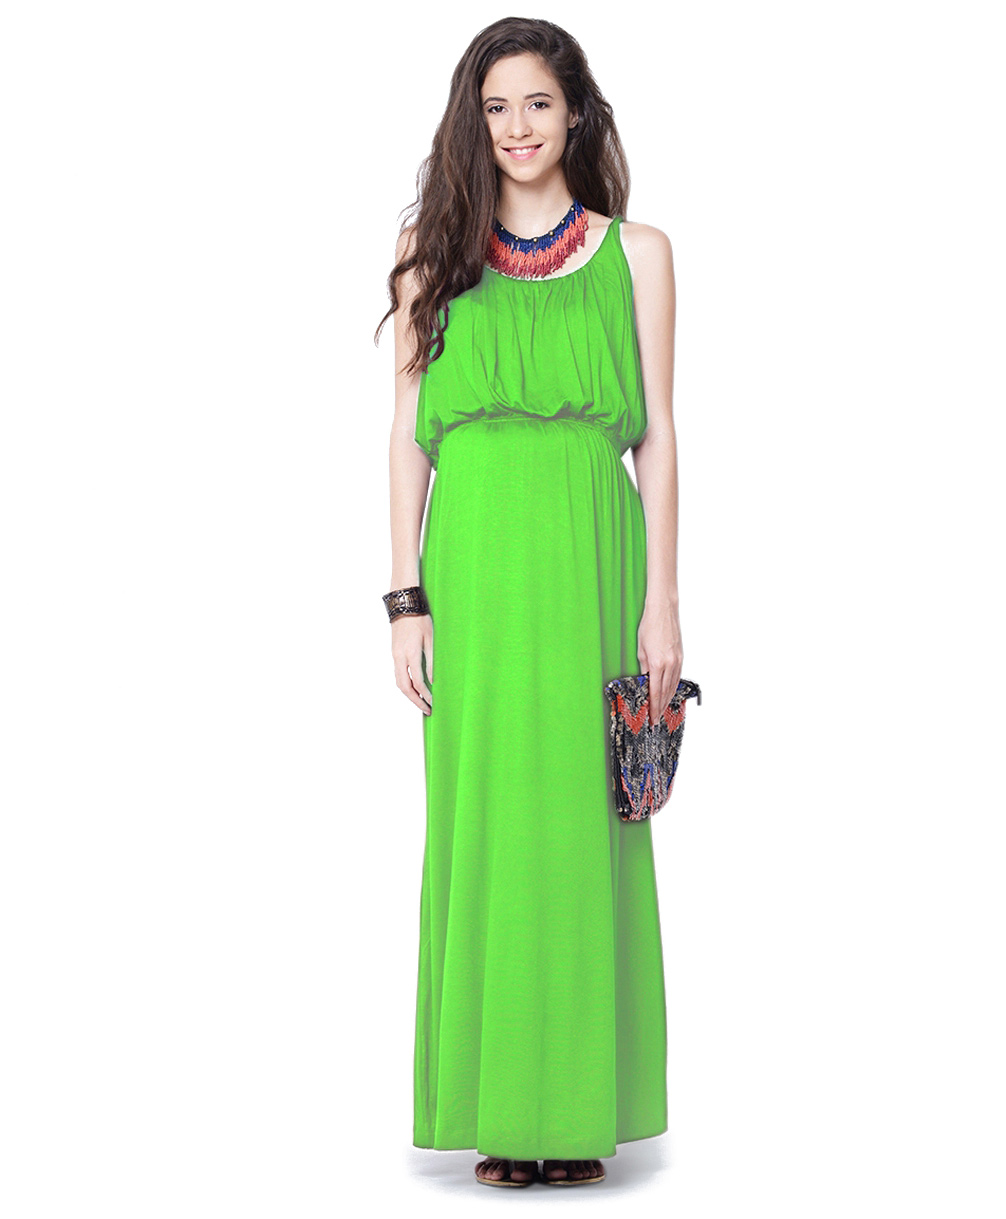 Mamacouture Green Maxi Maternity Dress